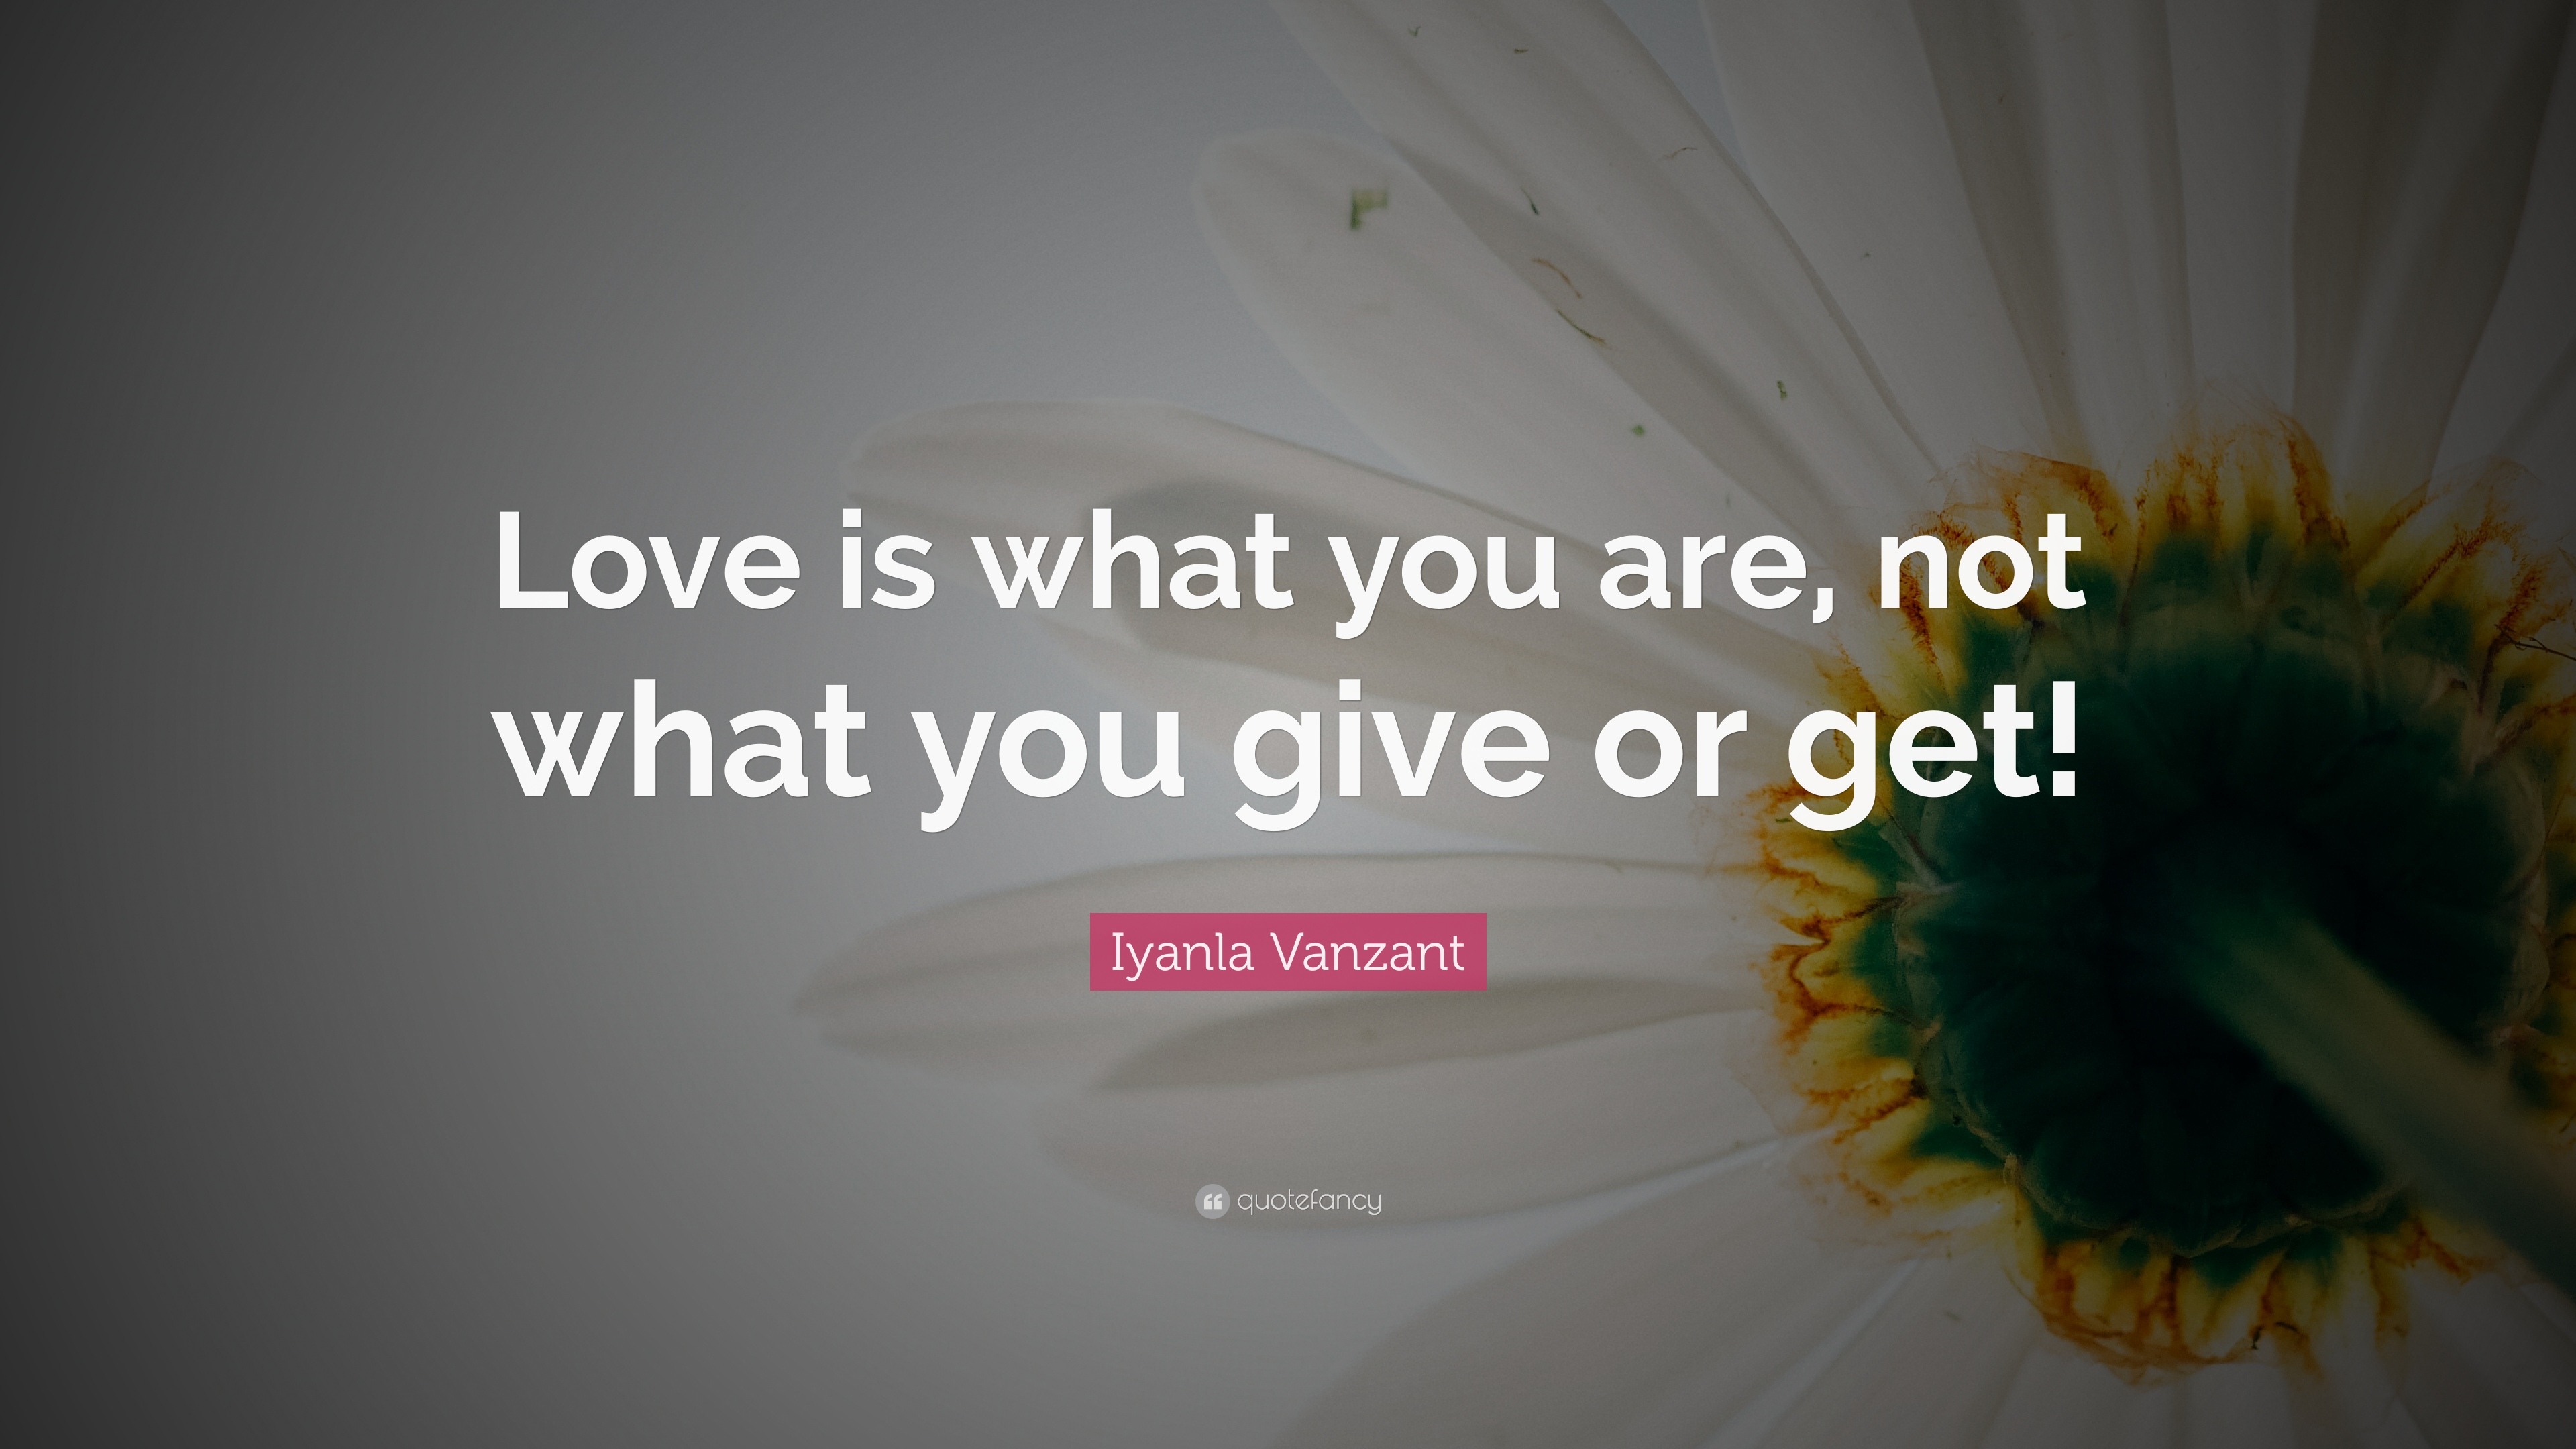 iyanla vanzant on love